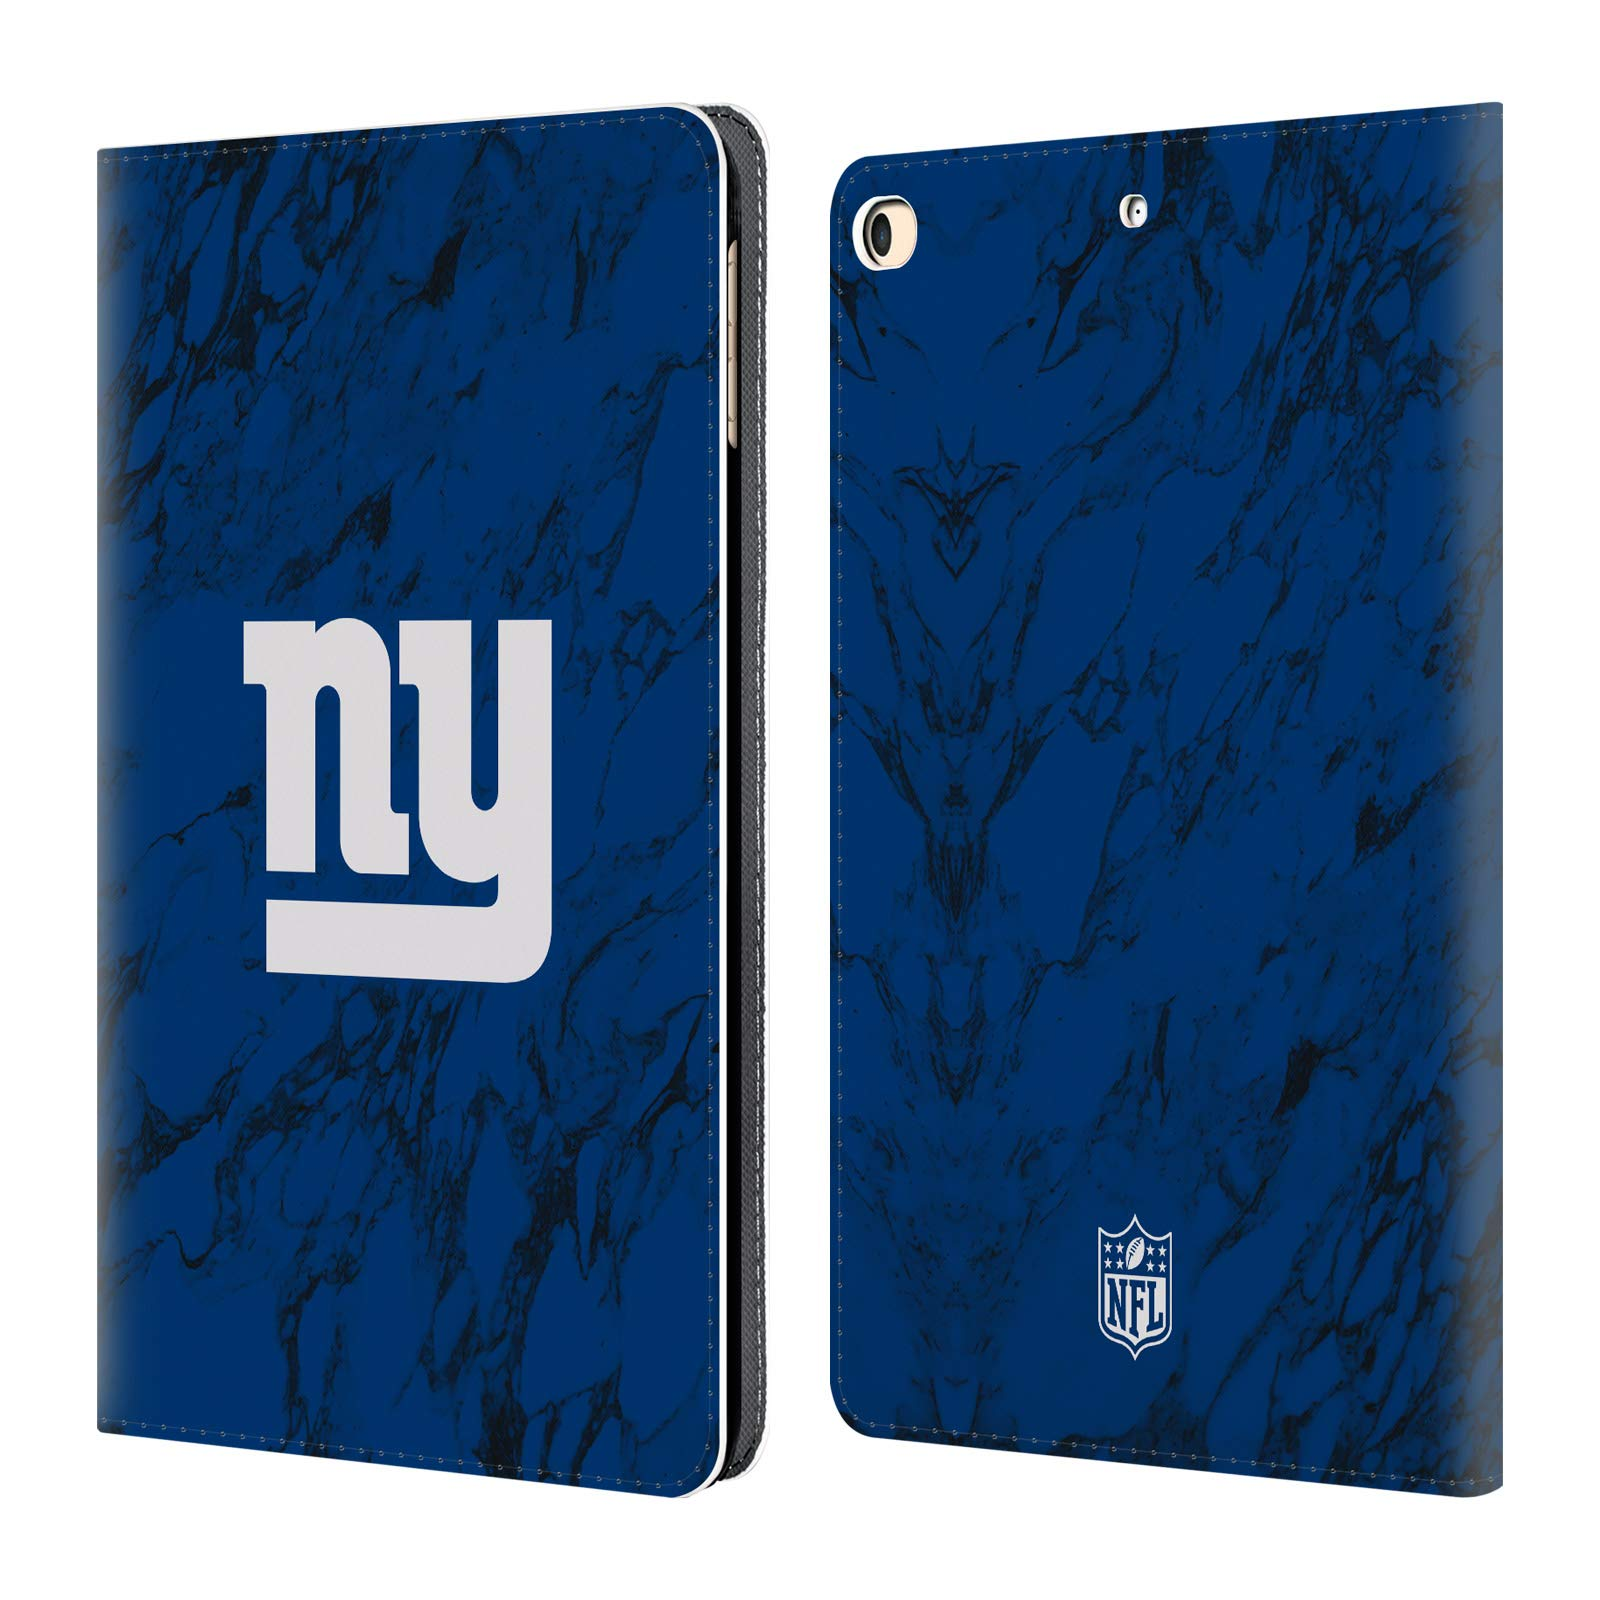 Official NFL Coloured Marble 2018/19 New York Giants Leather Book Wallet Case Cover for iPad 9.7 2017 / iPad 9.7 2018